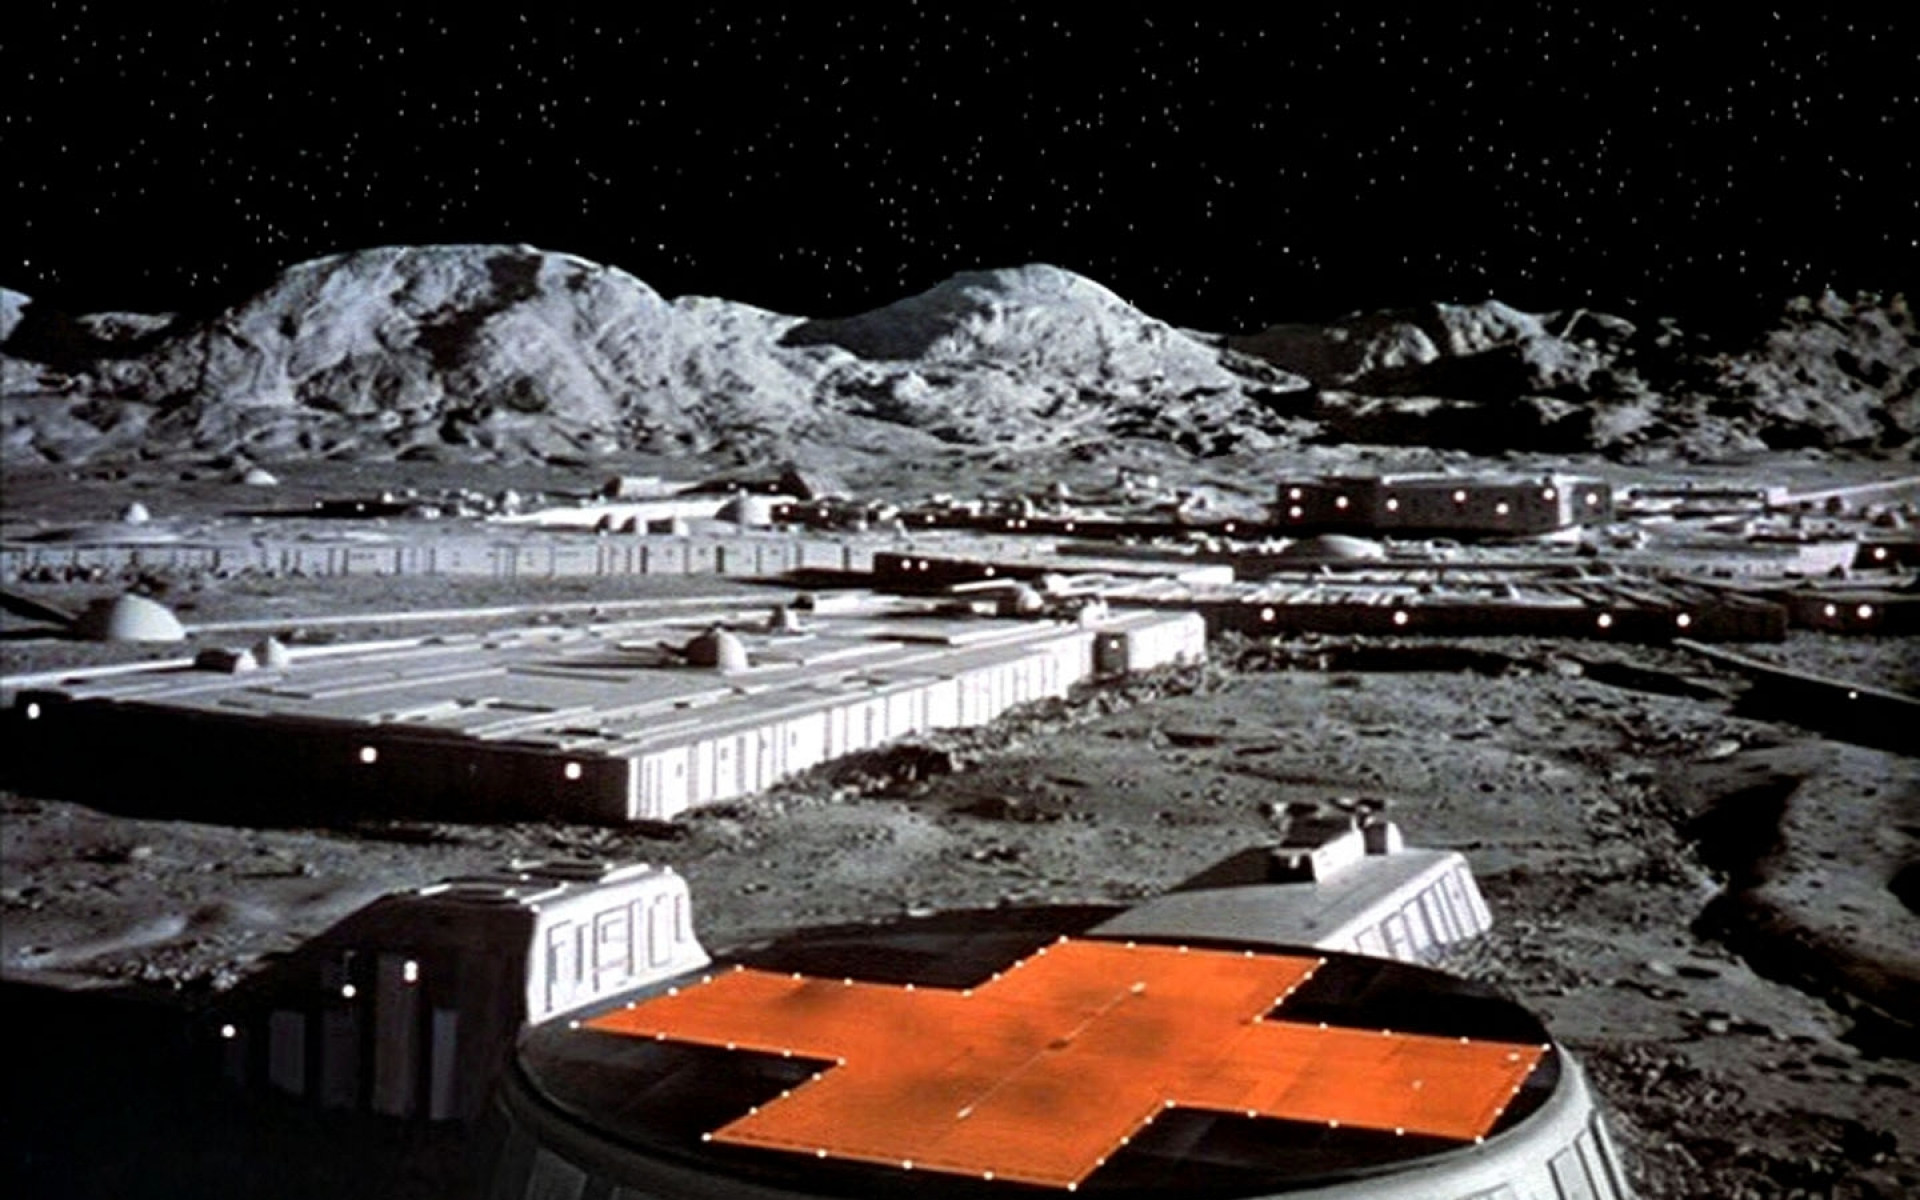 space fiction moon spaceships vehicles space 1999 1440x1080 wallpaper 1920x1200